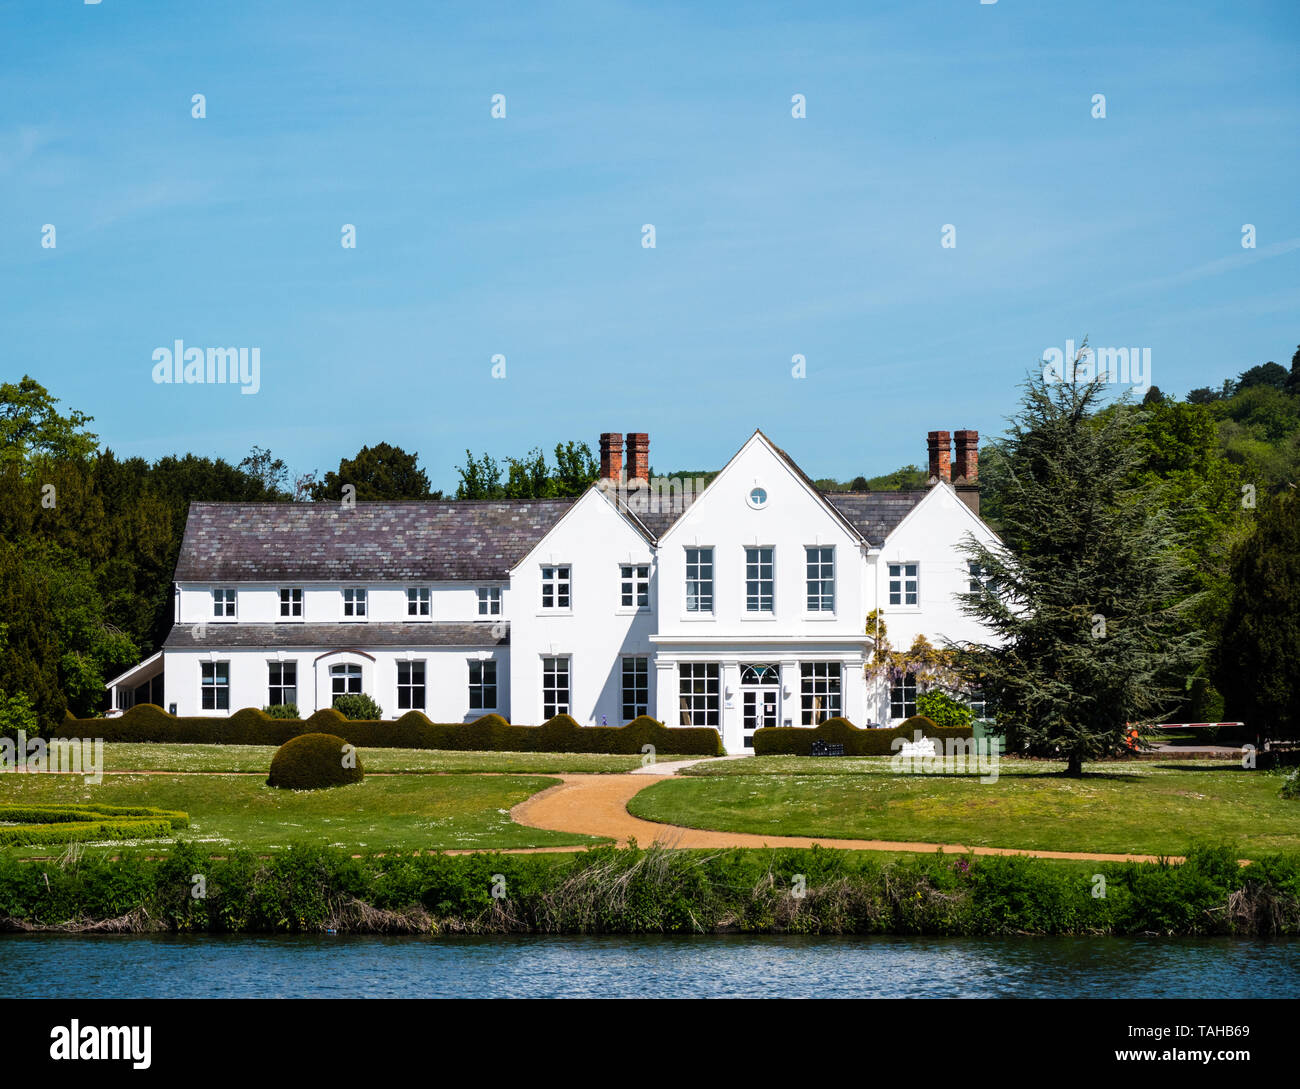 Henley Business School, Part of Reading University, Greenlands Country House, on The River Thames, Buckinghamshire, England, UK, GB. - Stock Image